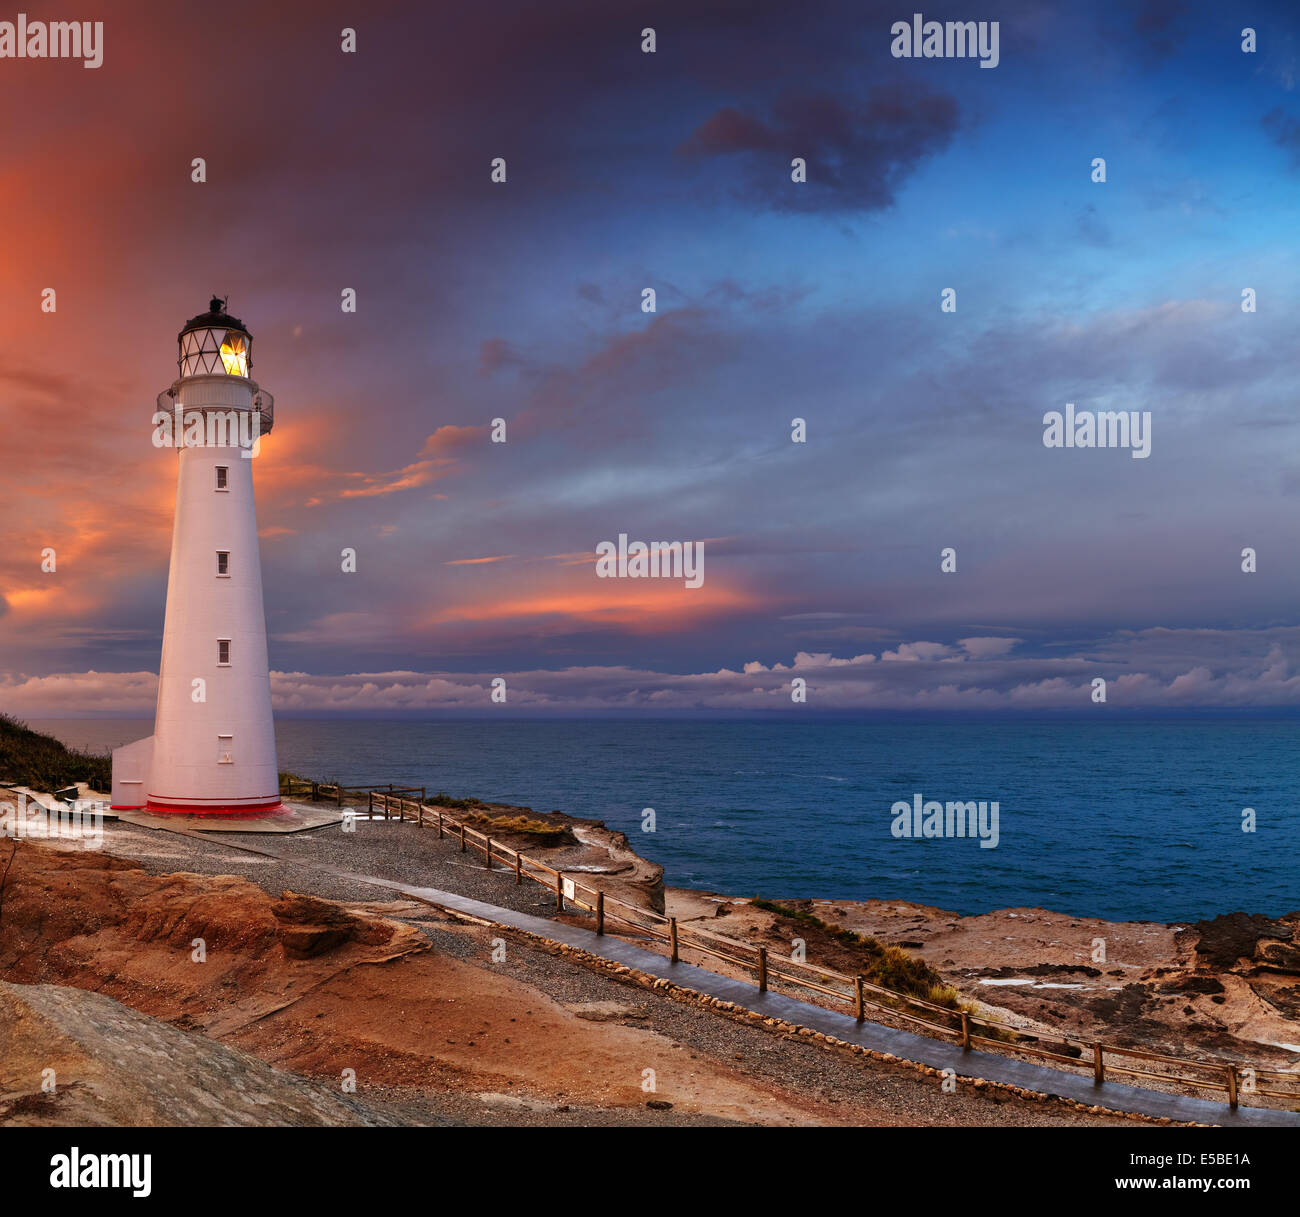 Château Point Lighthouse, coucher de soleil, Wairarapa, Nouvelle-Zélande Photo Stock